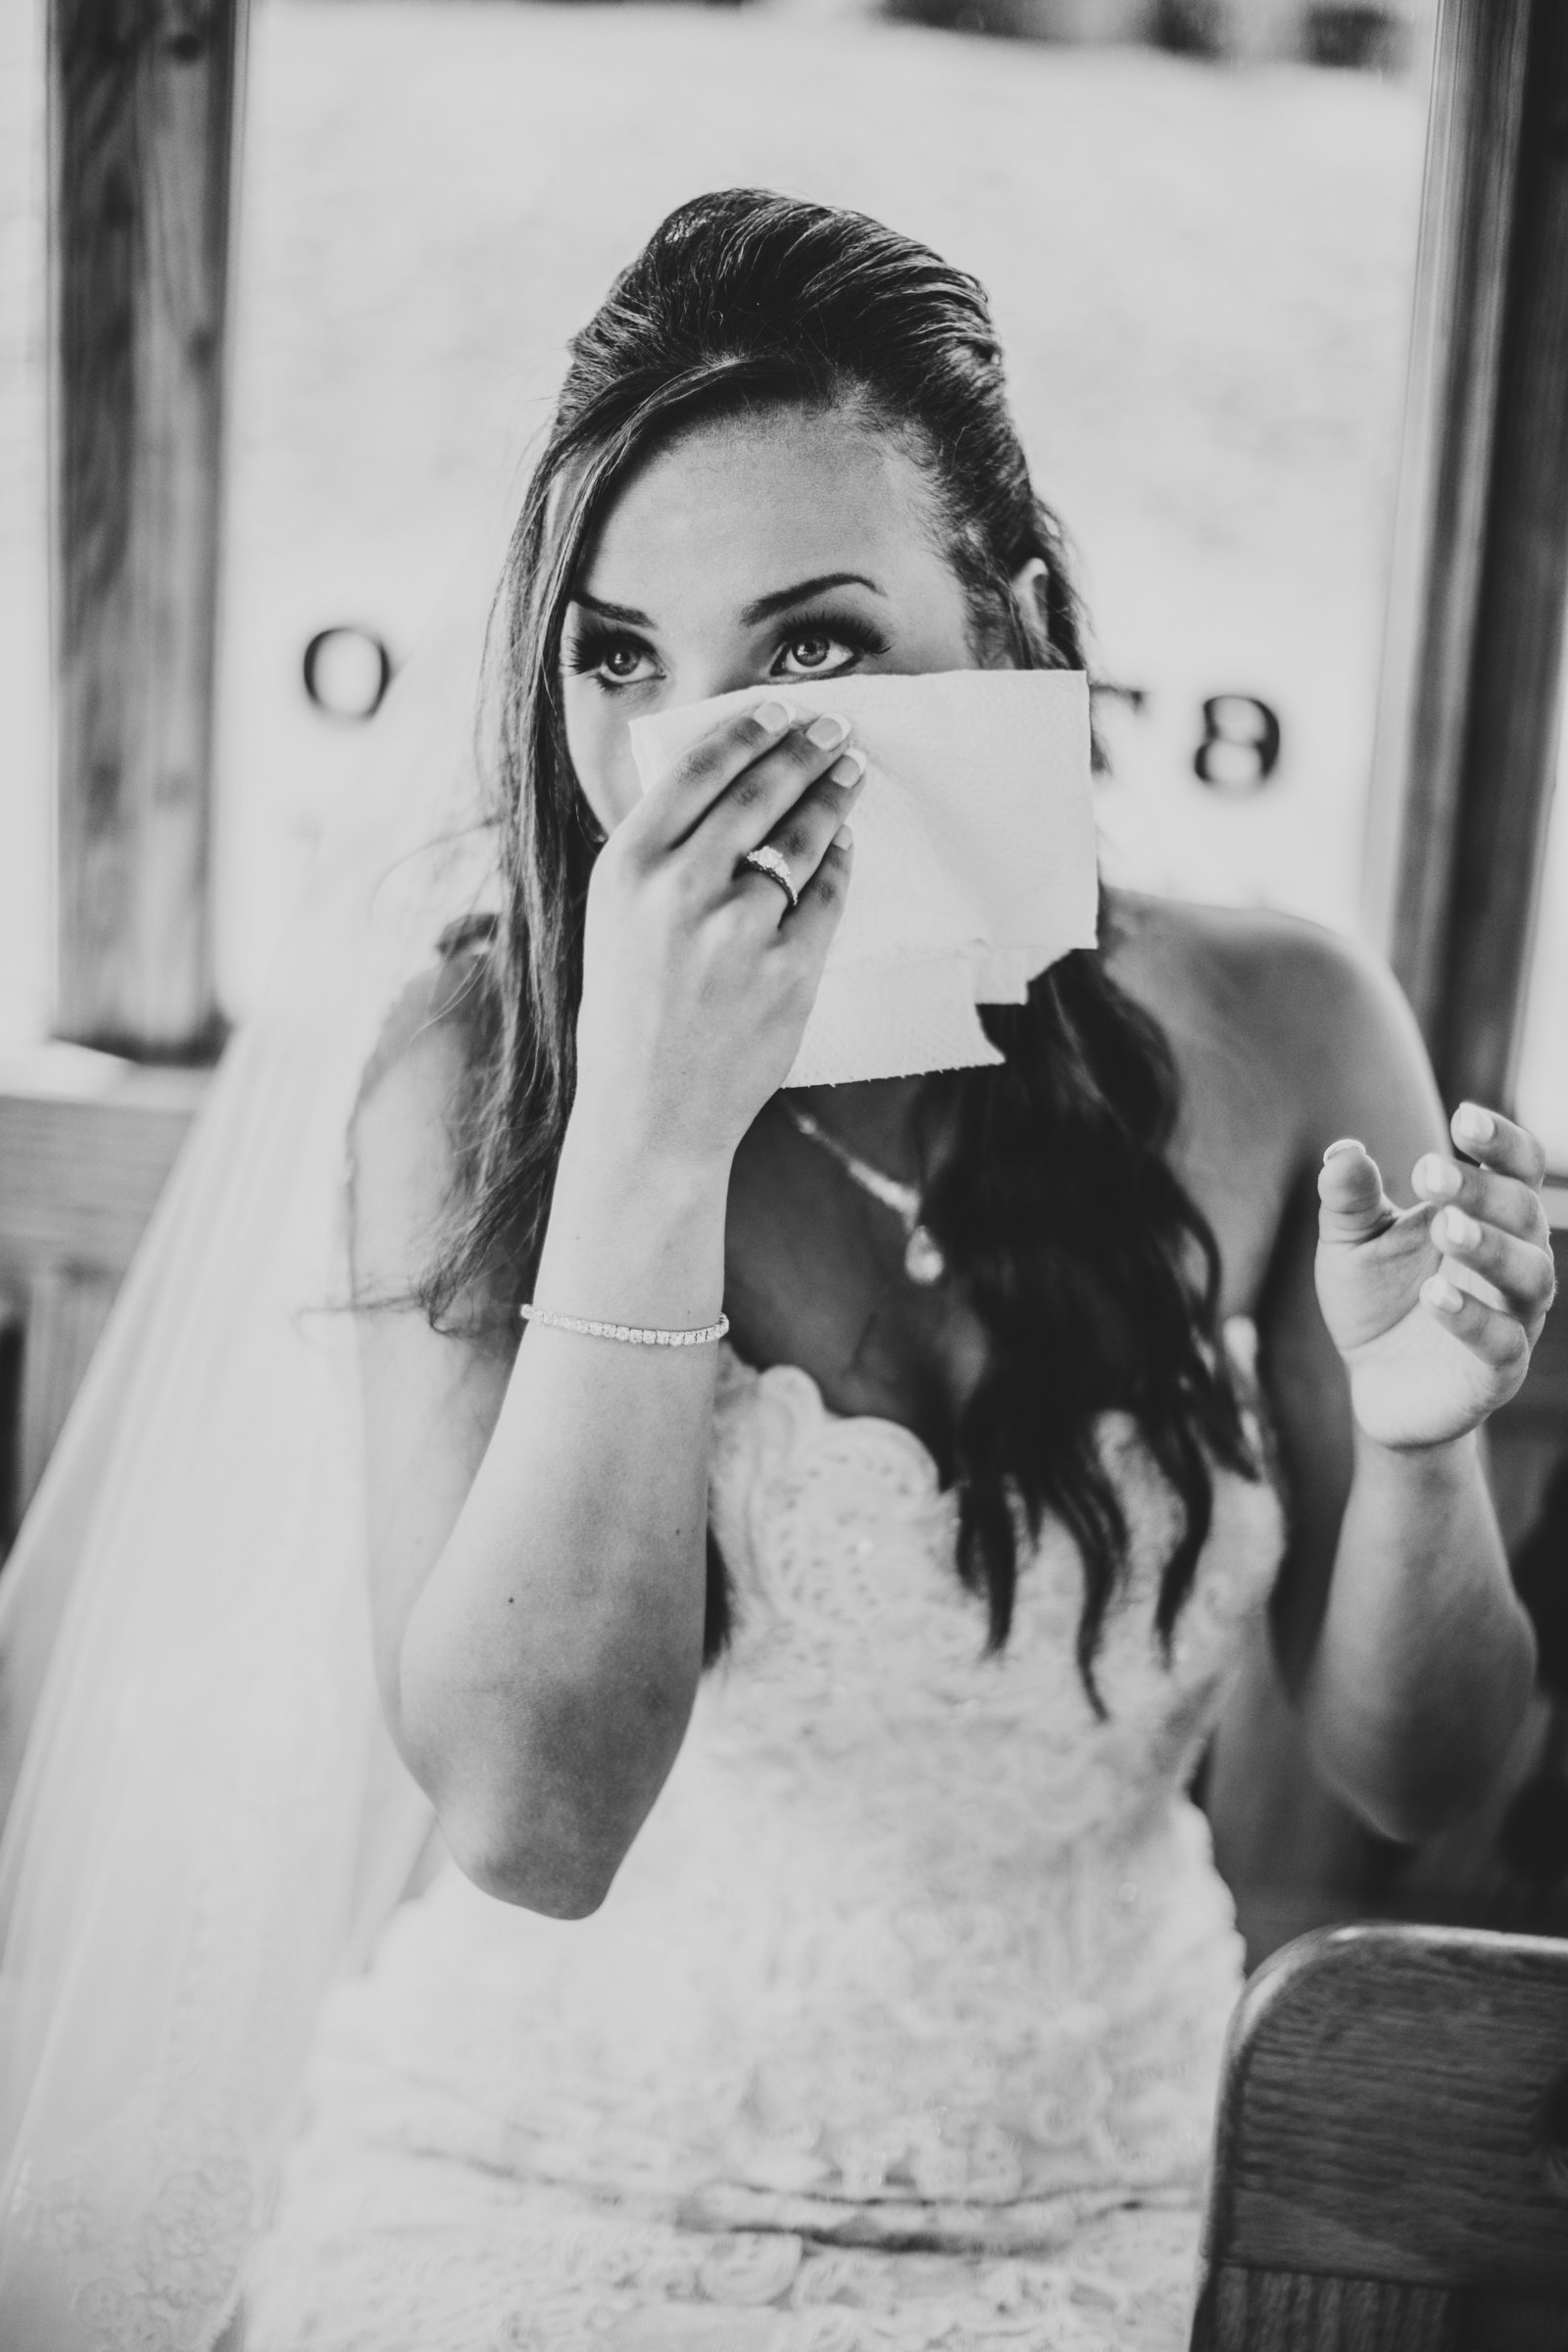 Adam_and_Danielle_s_Wedding_~_Getting_Ready-109.jpg